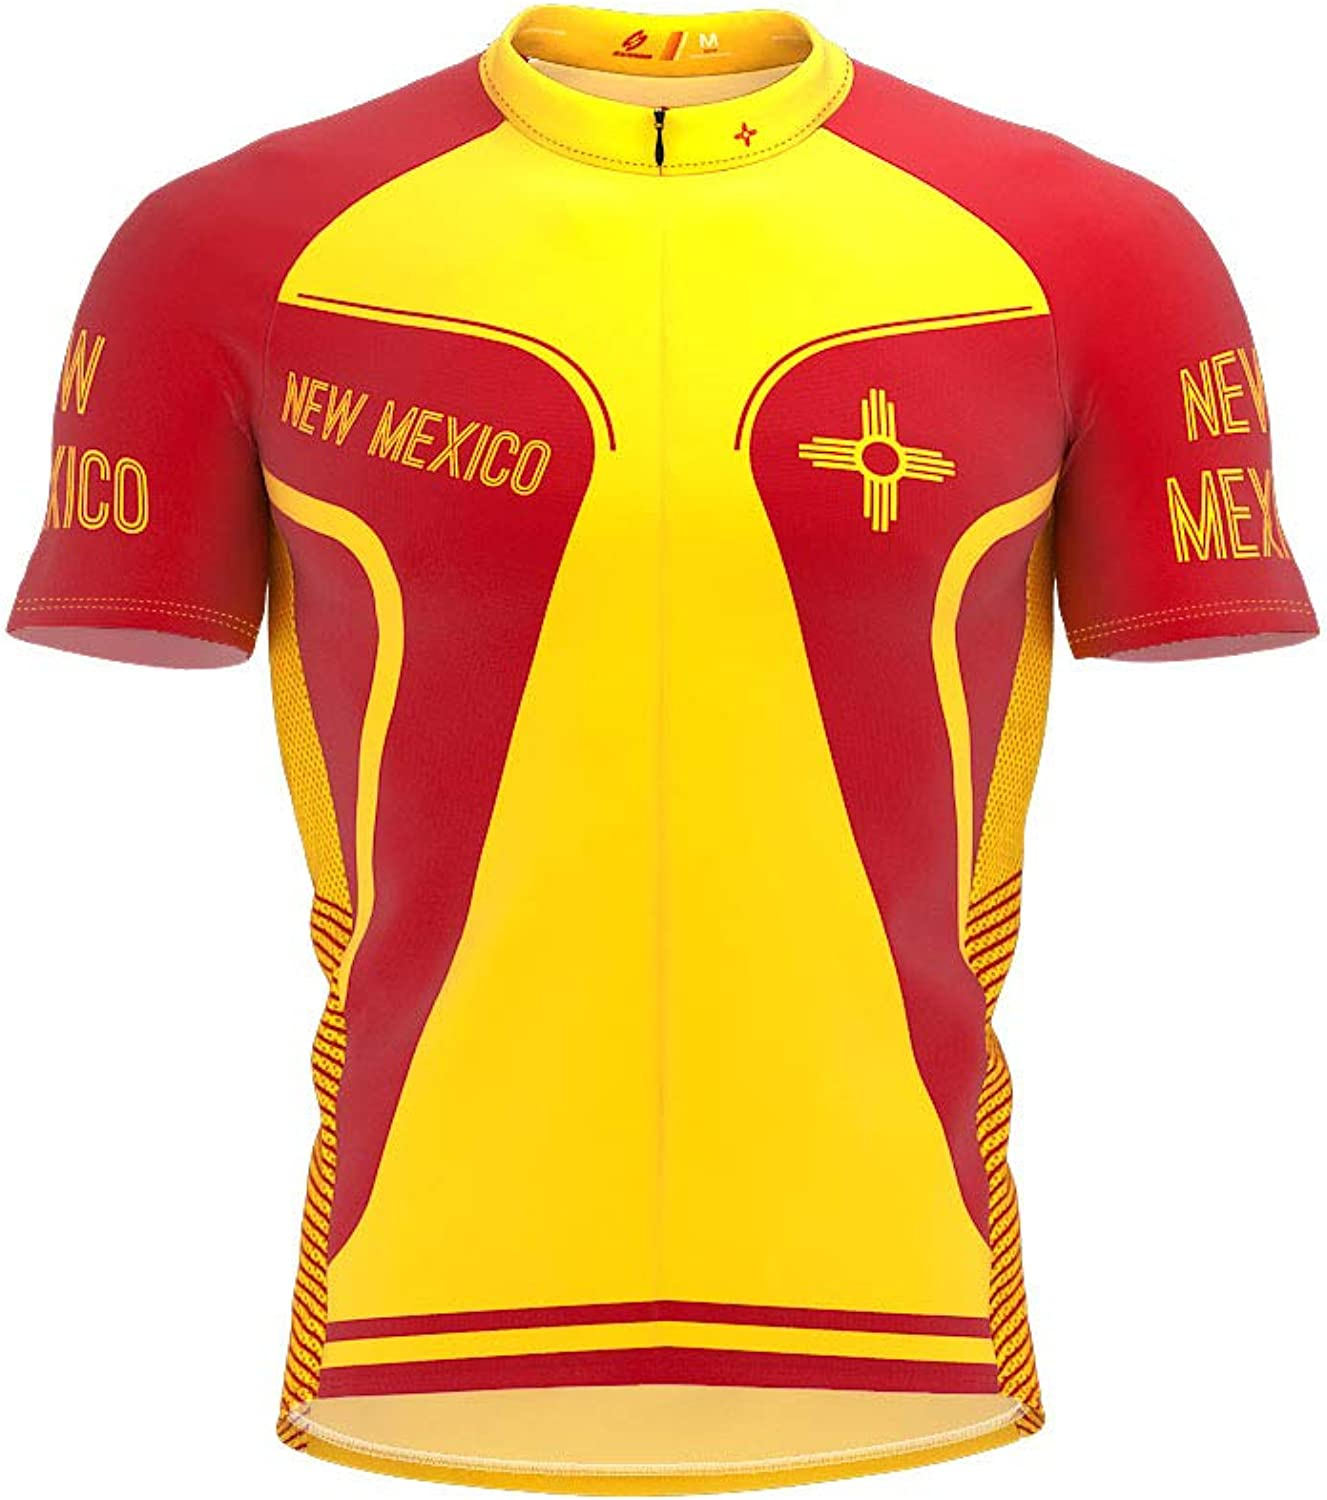 ScudoPro New Mexico Bike Short Sleeve Cycling Jersey for Women